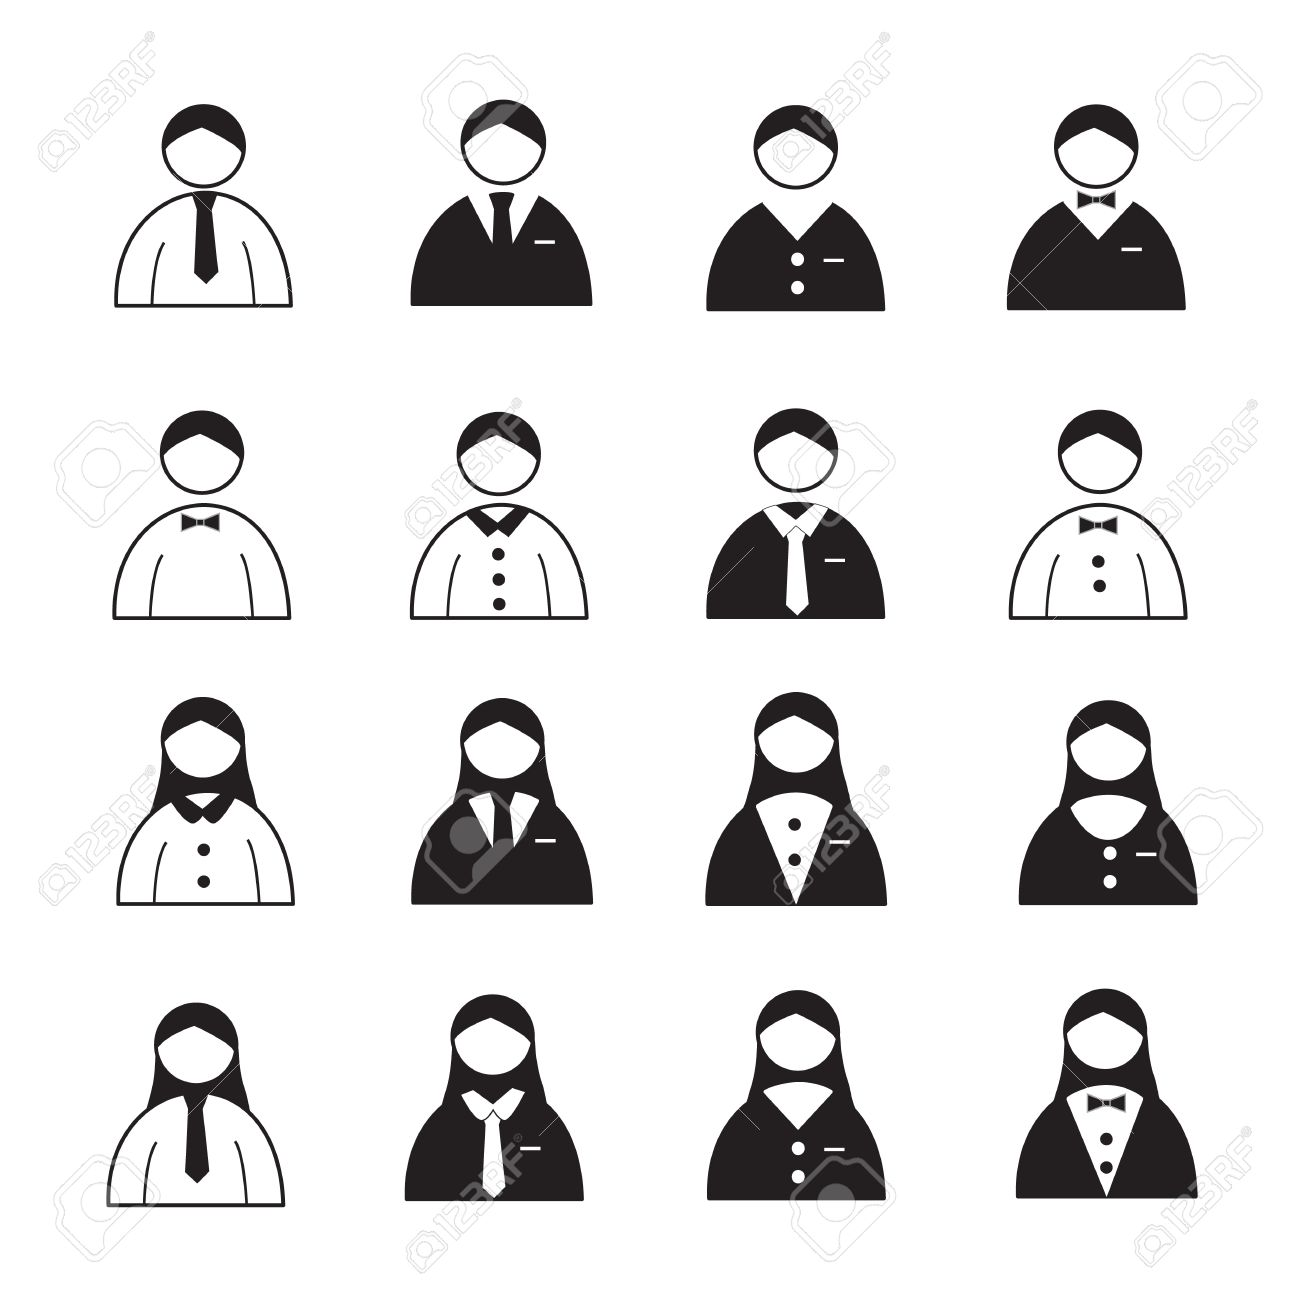 User Icons or People Icons Stock Vector - 20692200